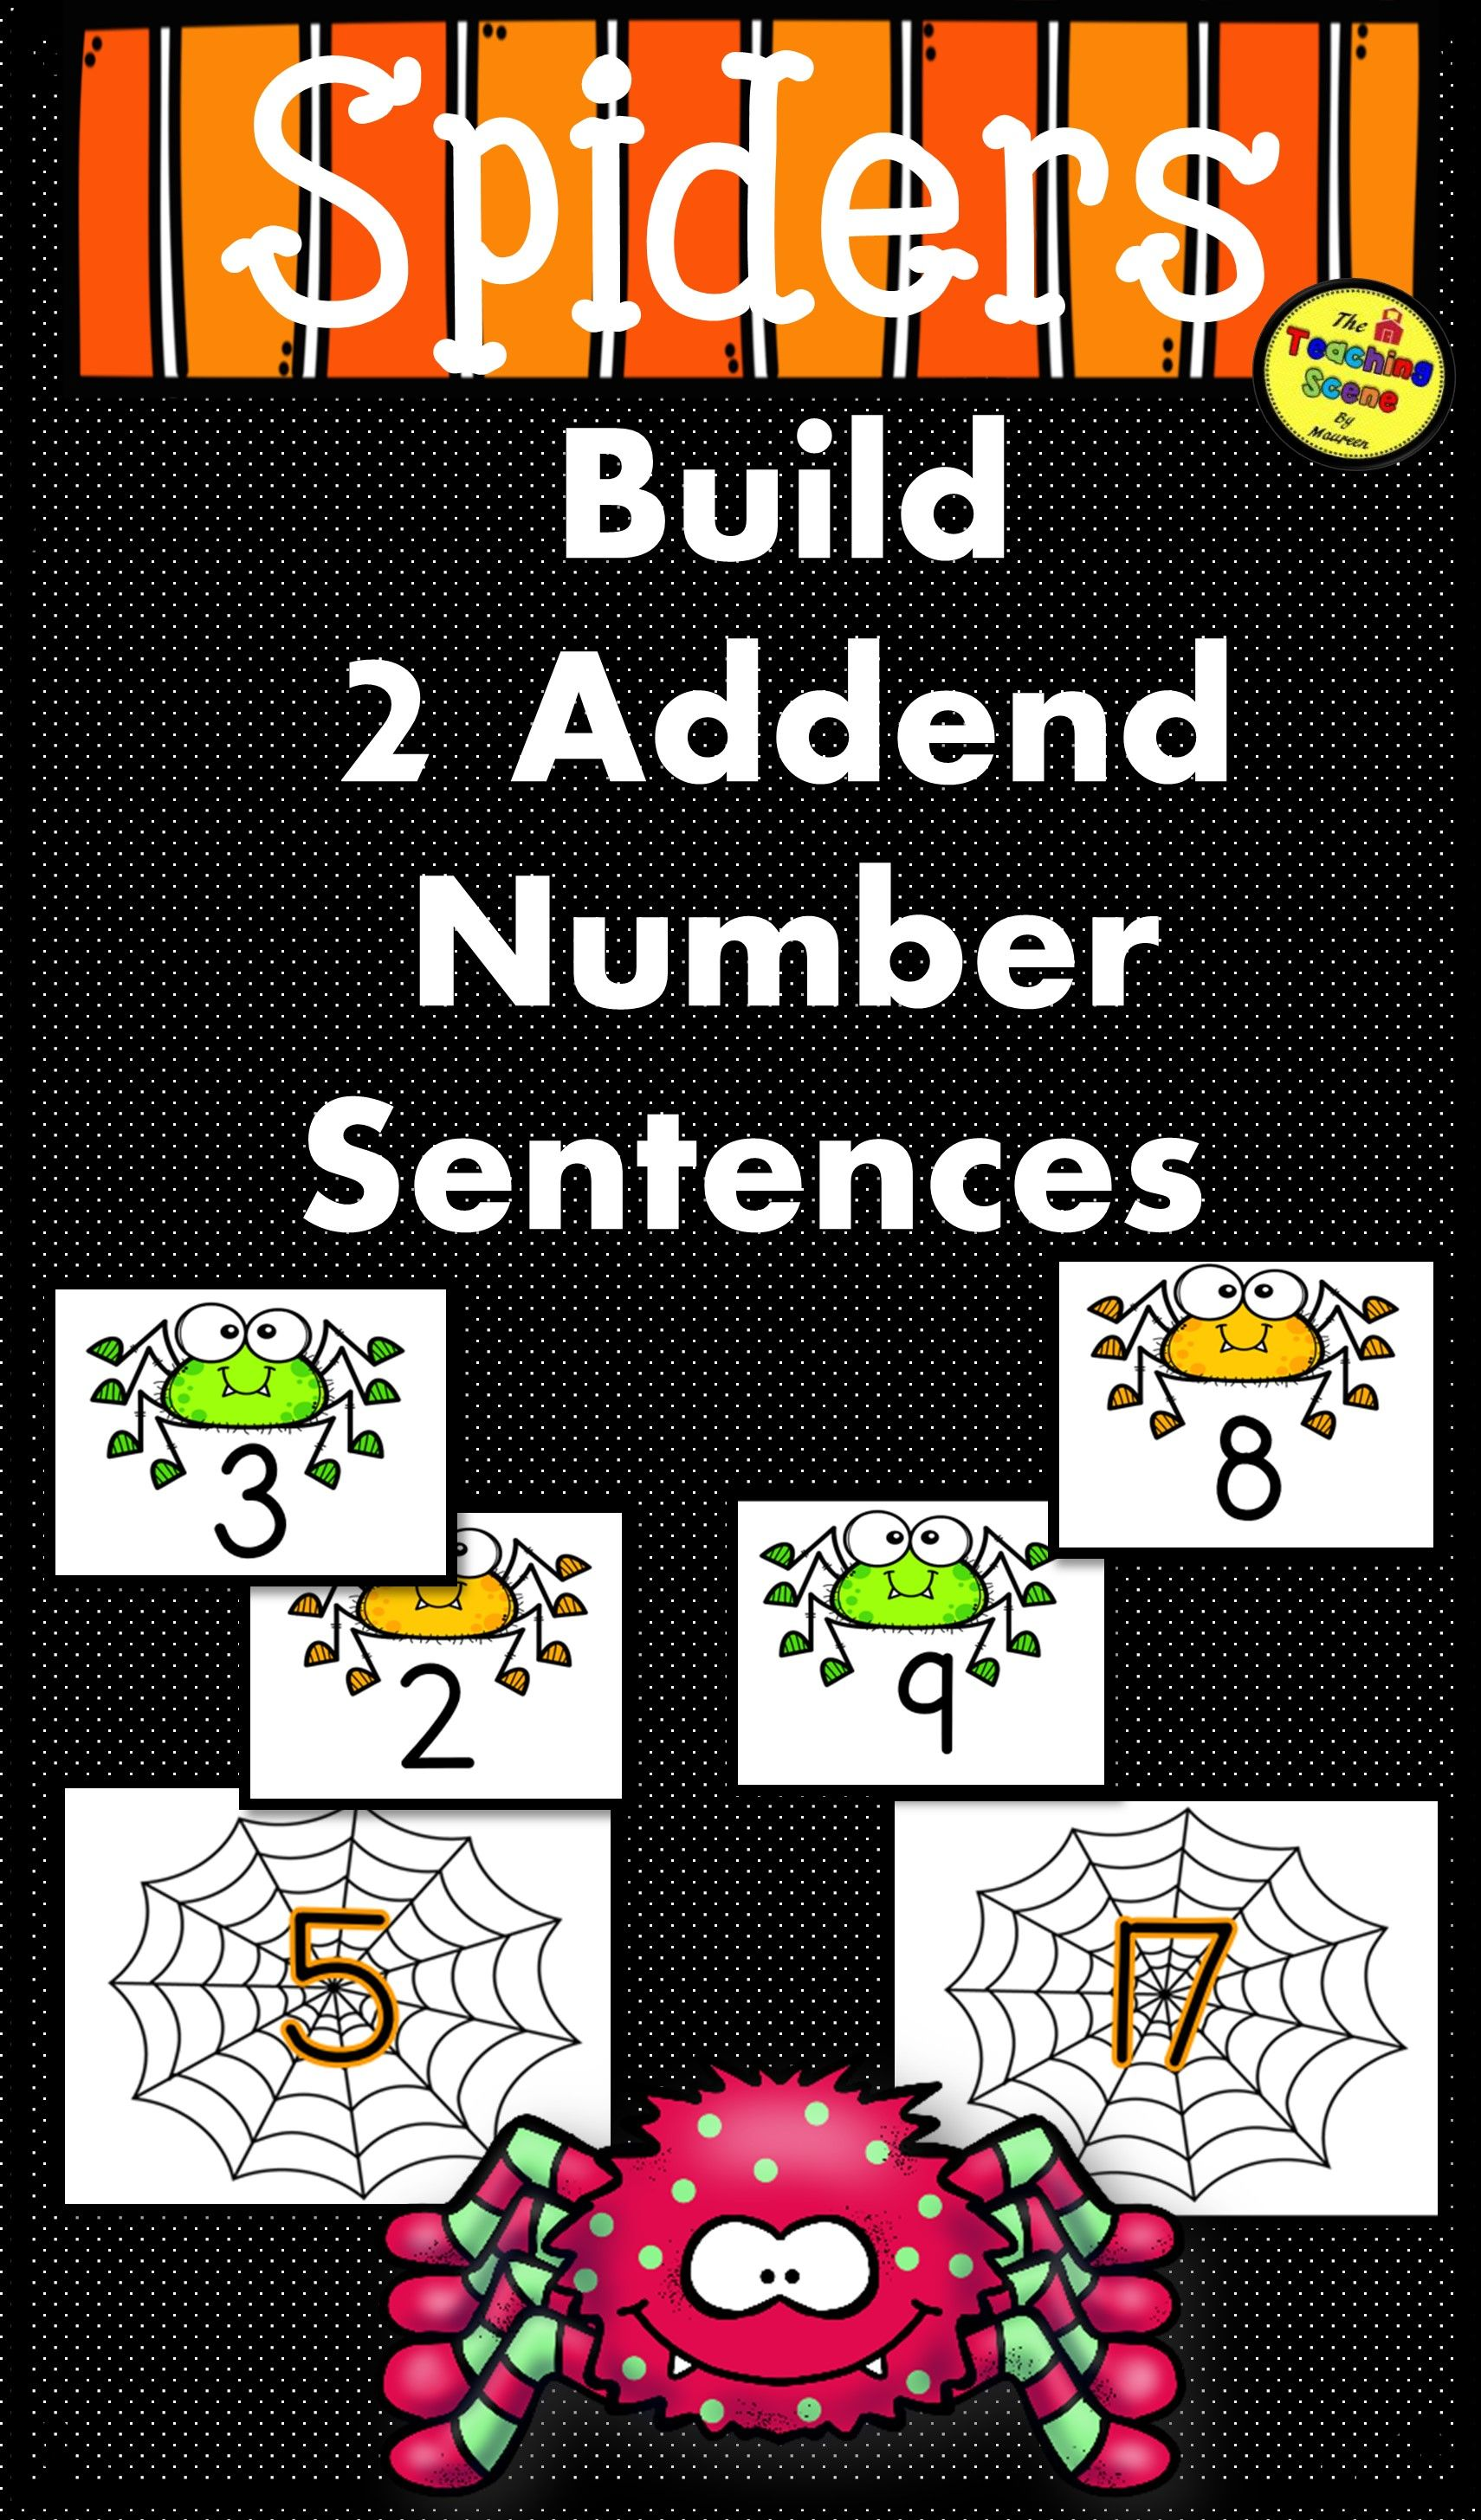 Spiders Build 2 Addend 0 20 Addition Amp Subtraction Number